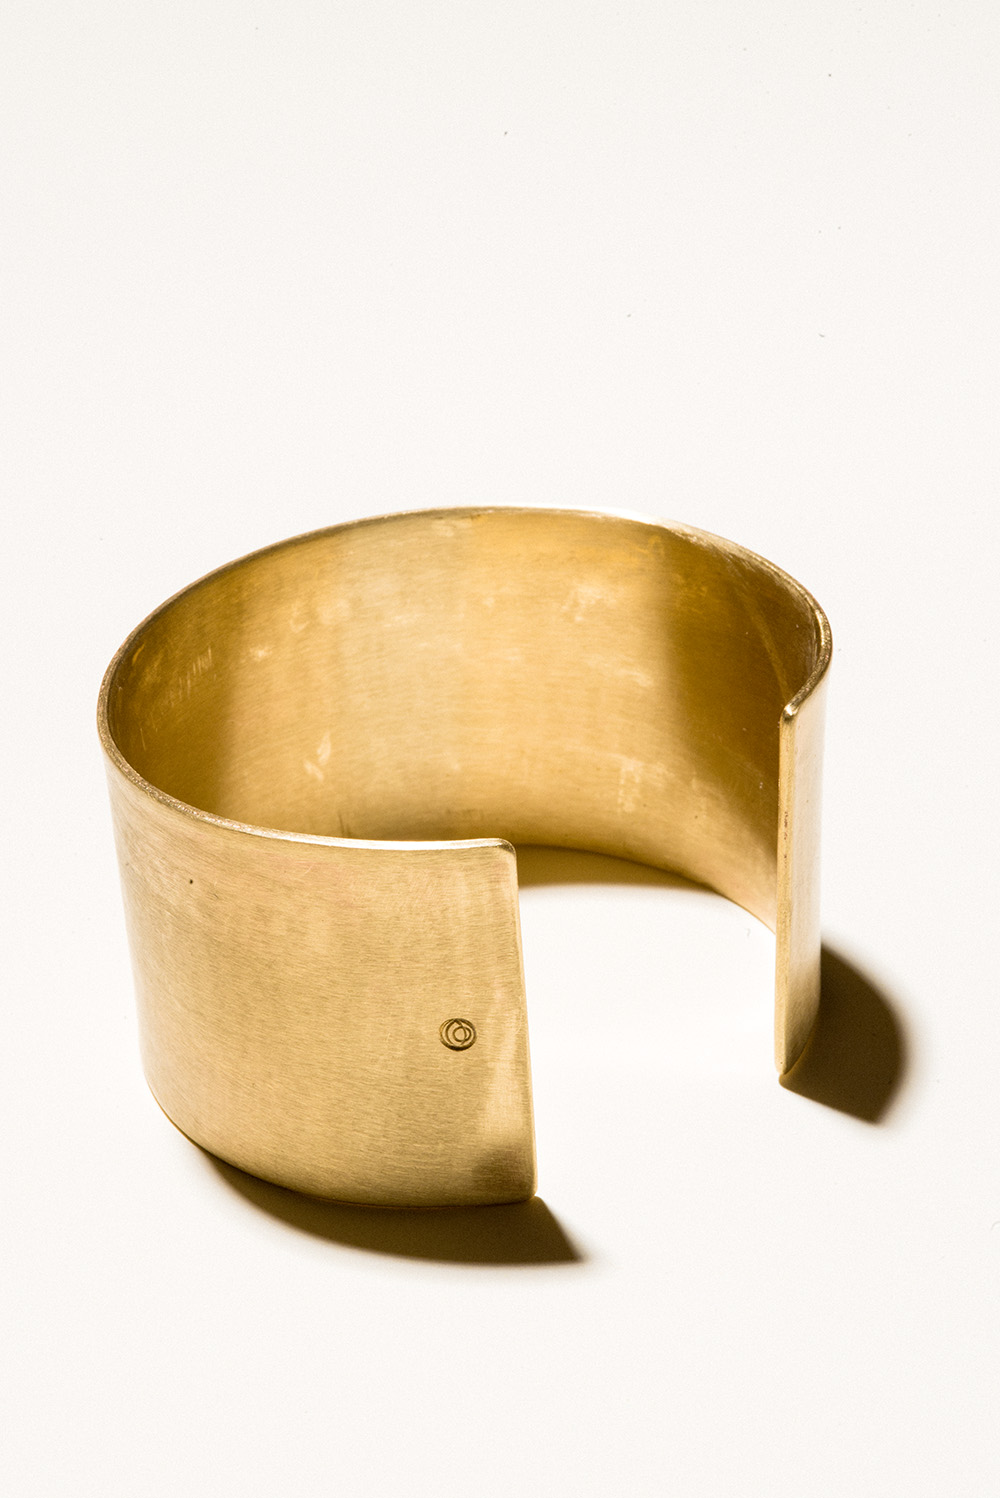 40 Brass Cuff - 40mm wideJewelers Brass with Lacquer FinishHand Smithed$125